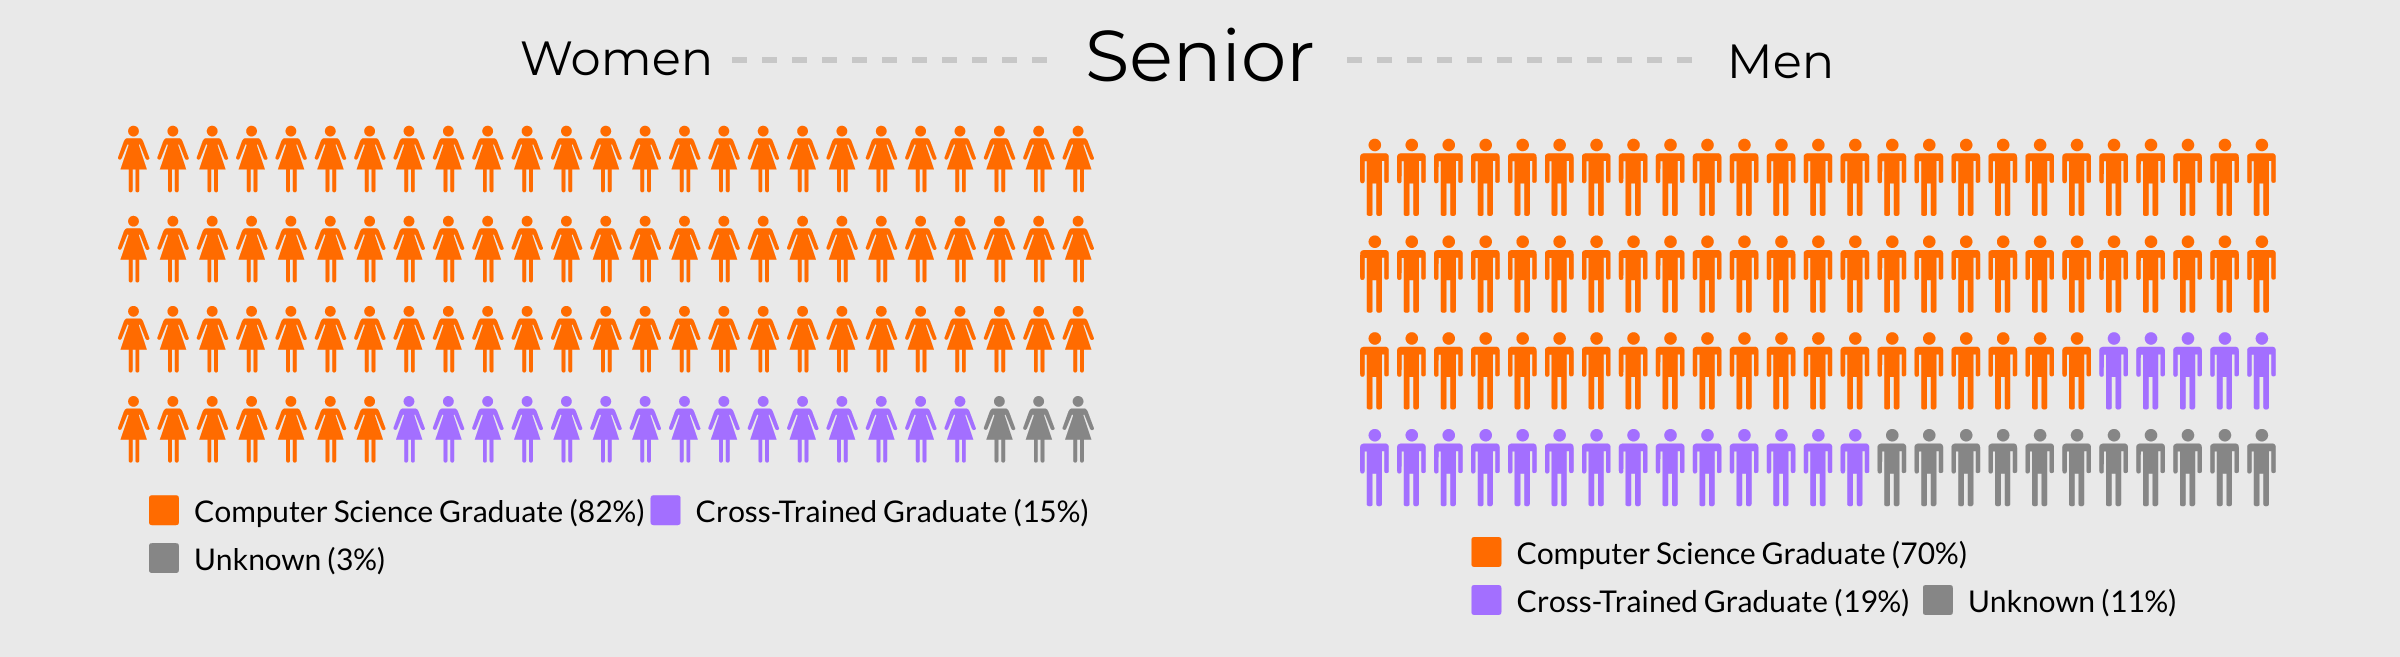 Visualisation comparing what percentage of Senior Ruby developers have a degree versus those who complete a bootcamp.